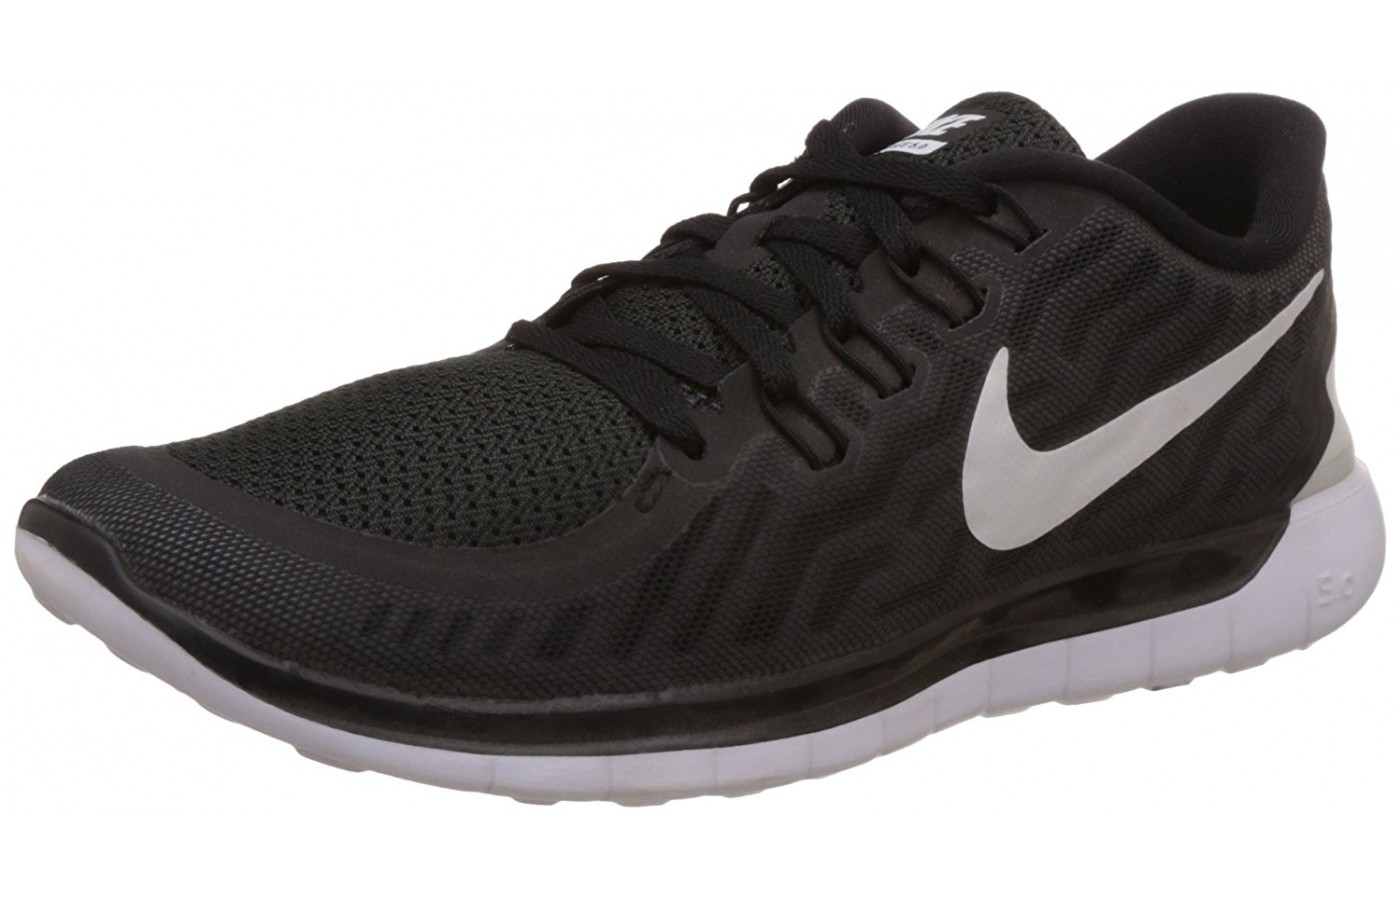 new style 2e569 bde96 angled view of the Nike Free 5.0 ...